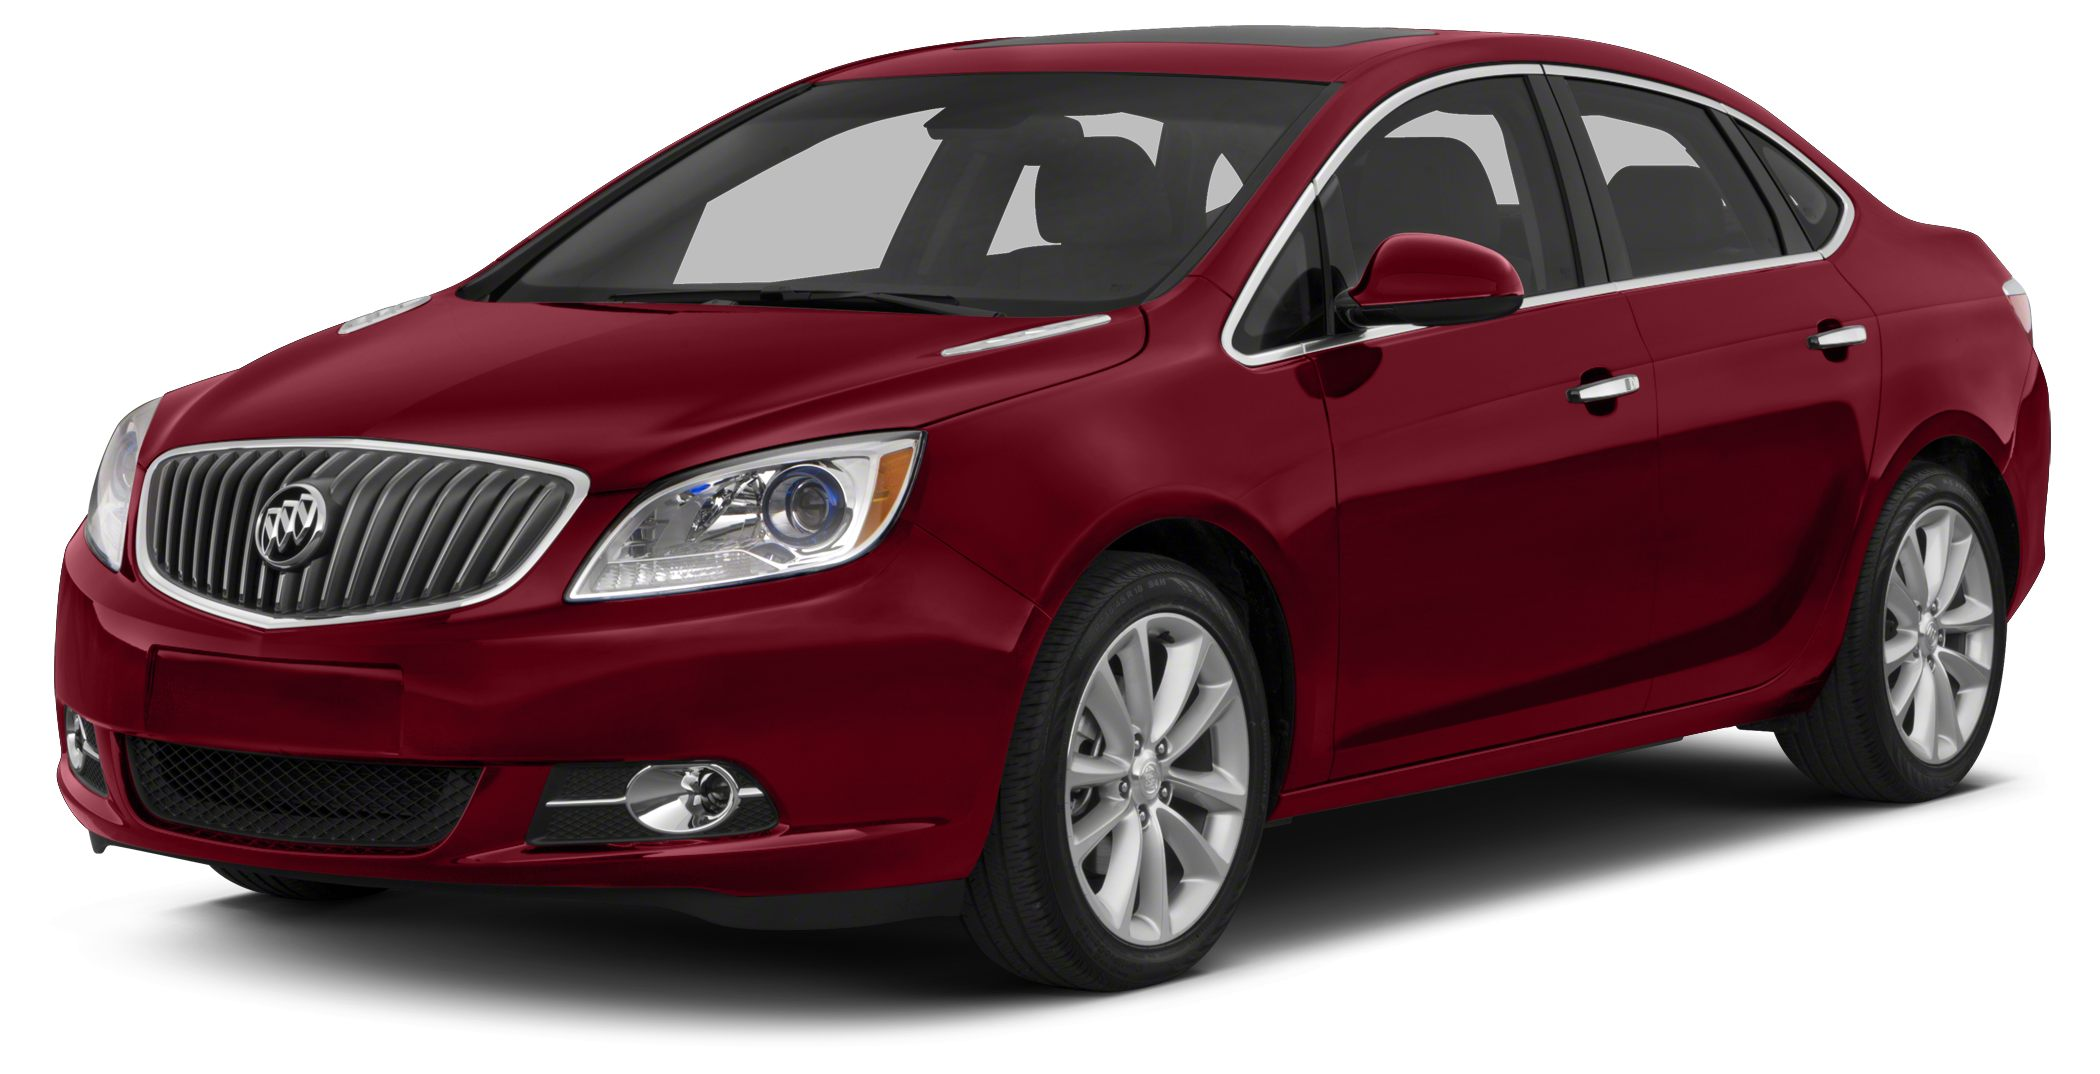 2013 Buick Verano Premium Group Recent Arrival Priced below KBB Fair Purchase Price BUICK CERT